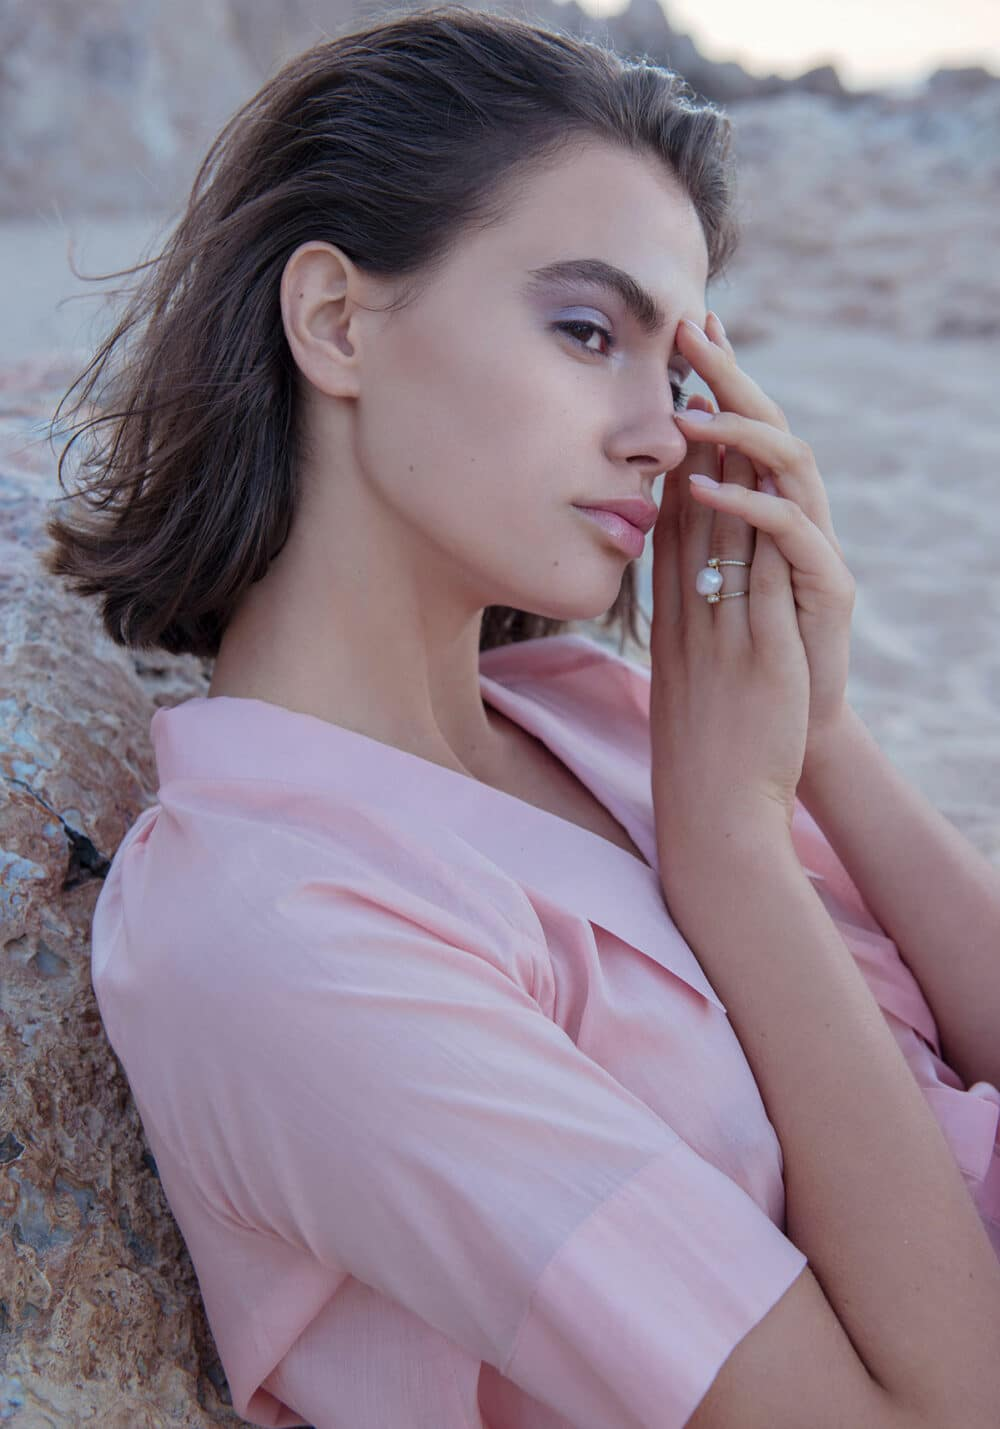 beauty photographer pastel editorial pink